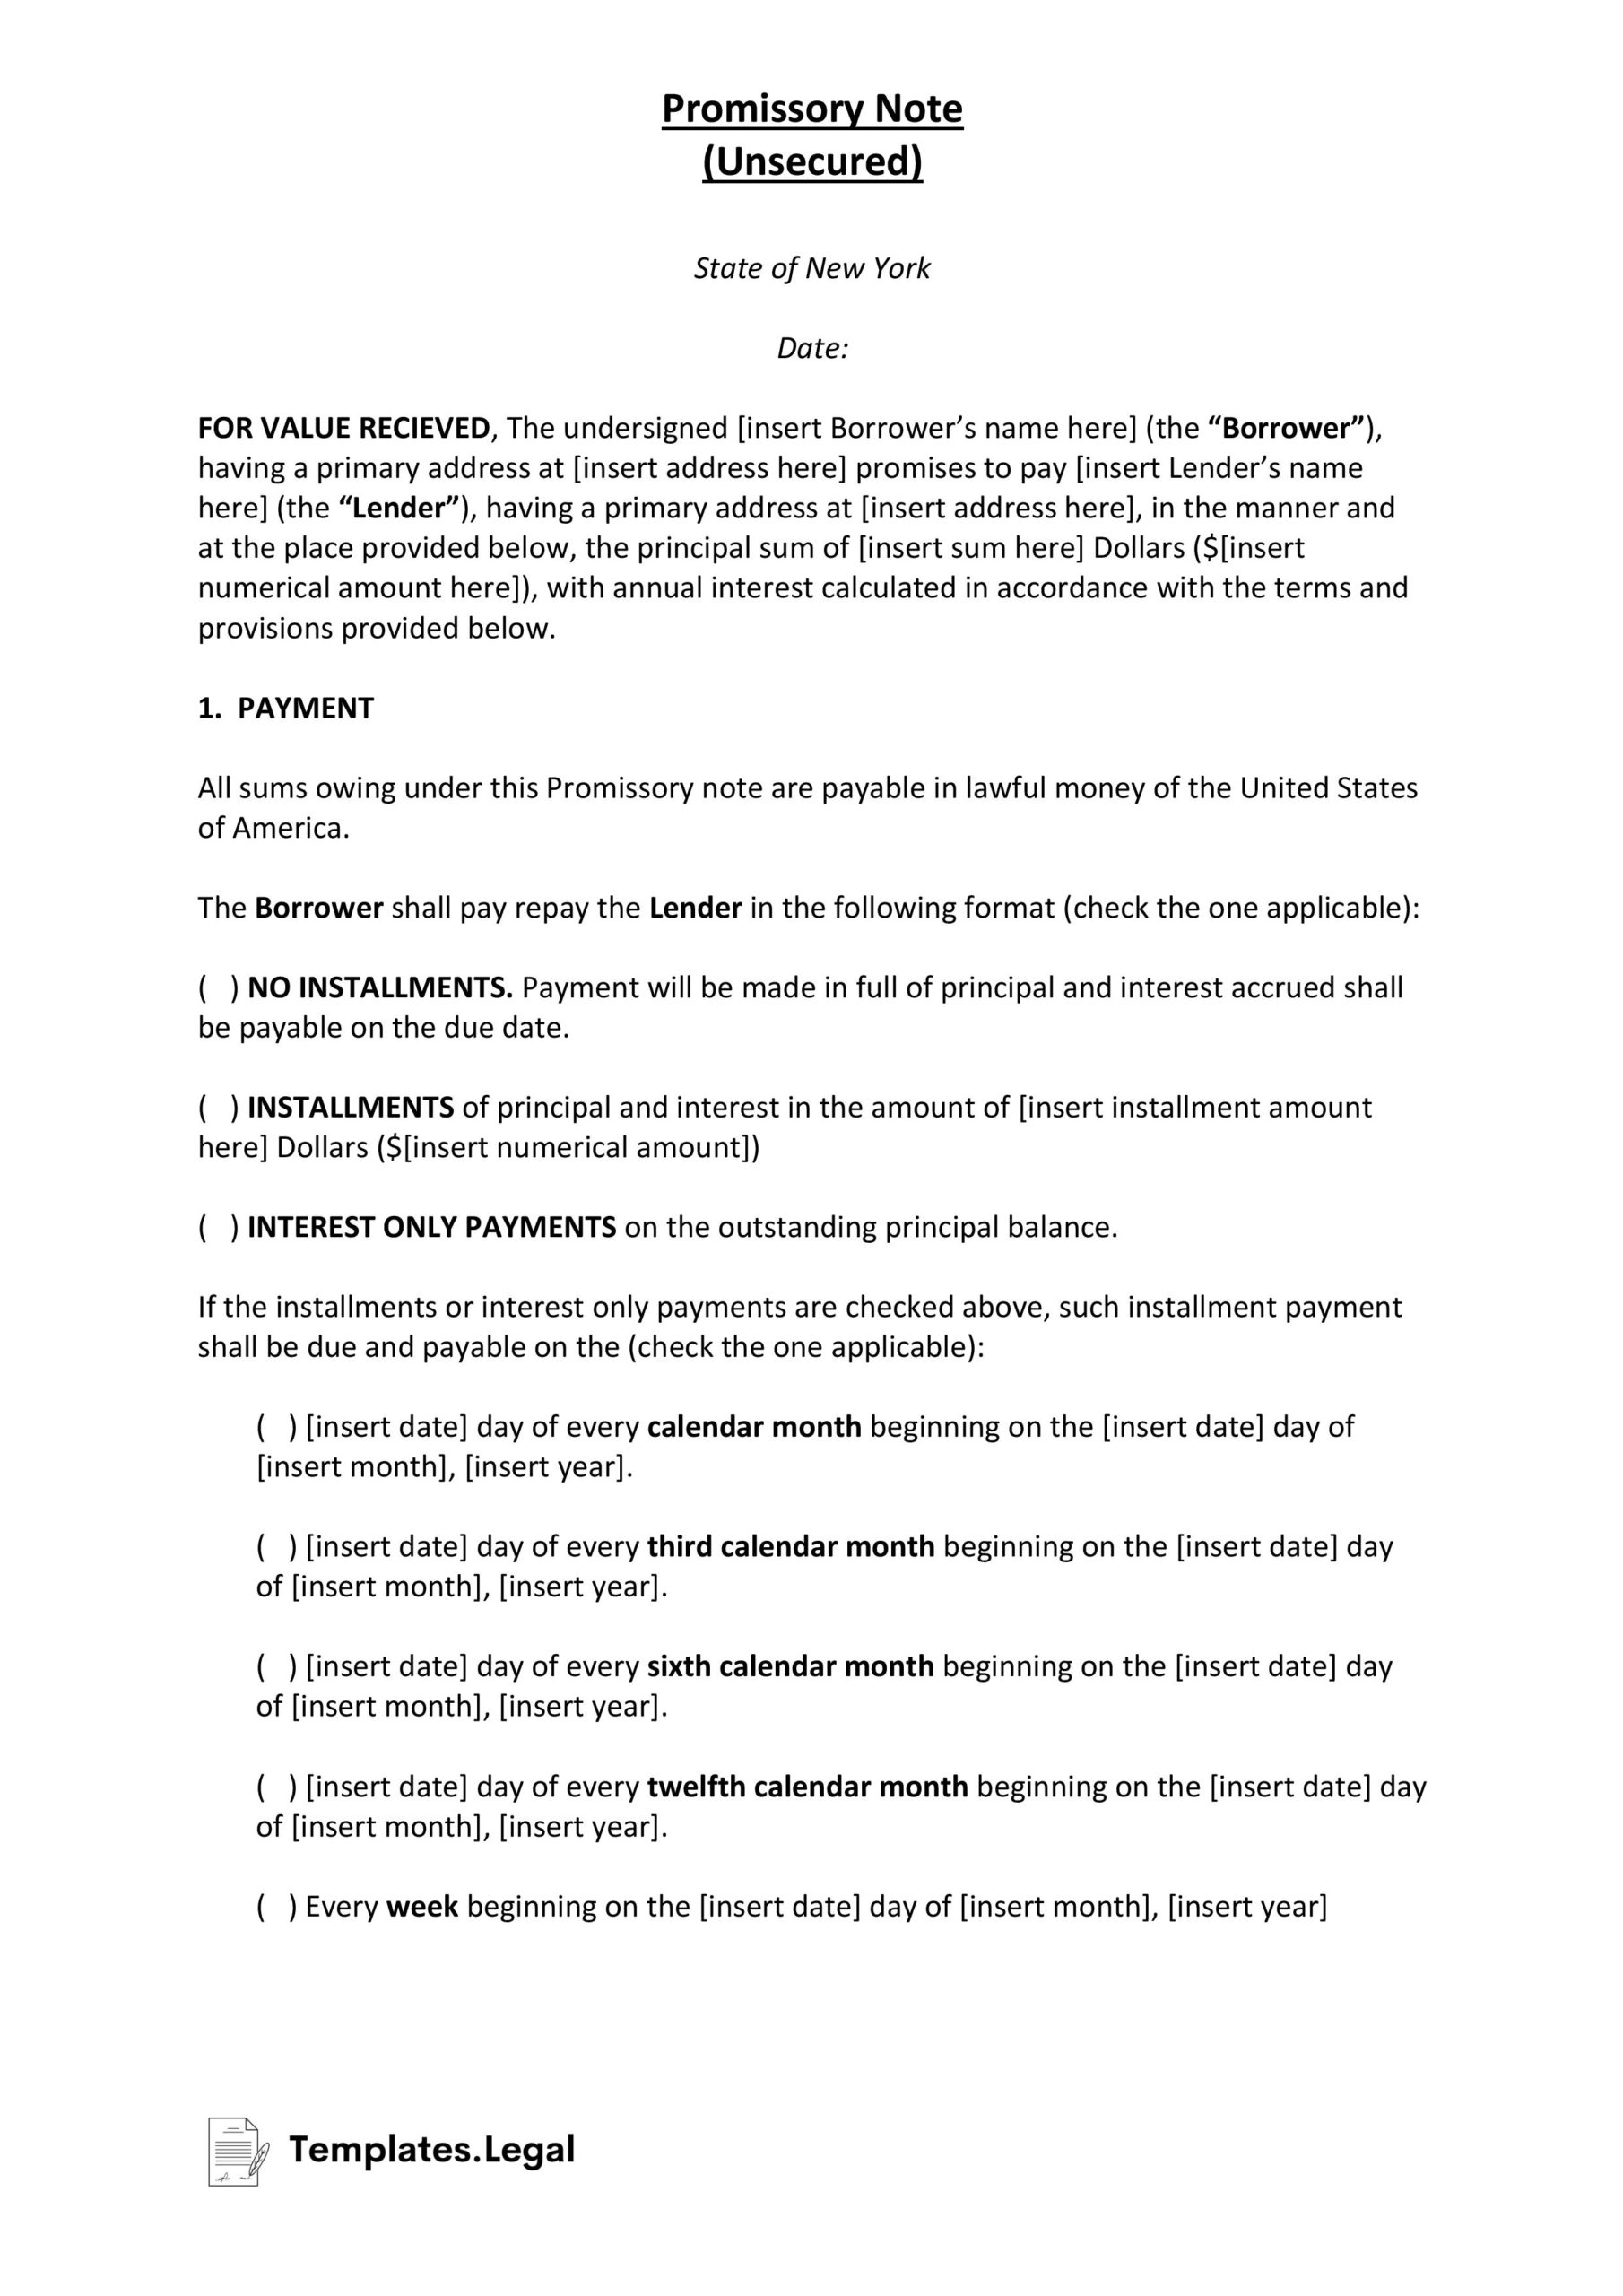 New York Unsecured Promissory Note - Templates.Legal